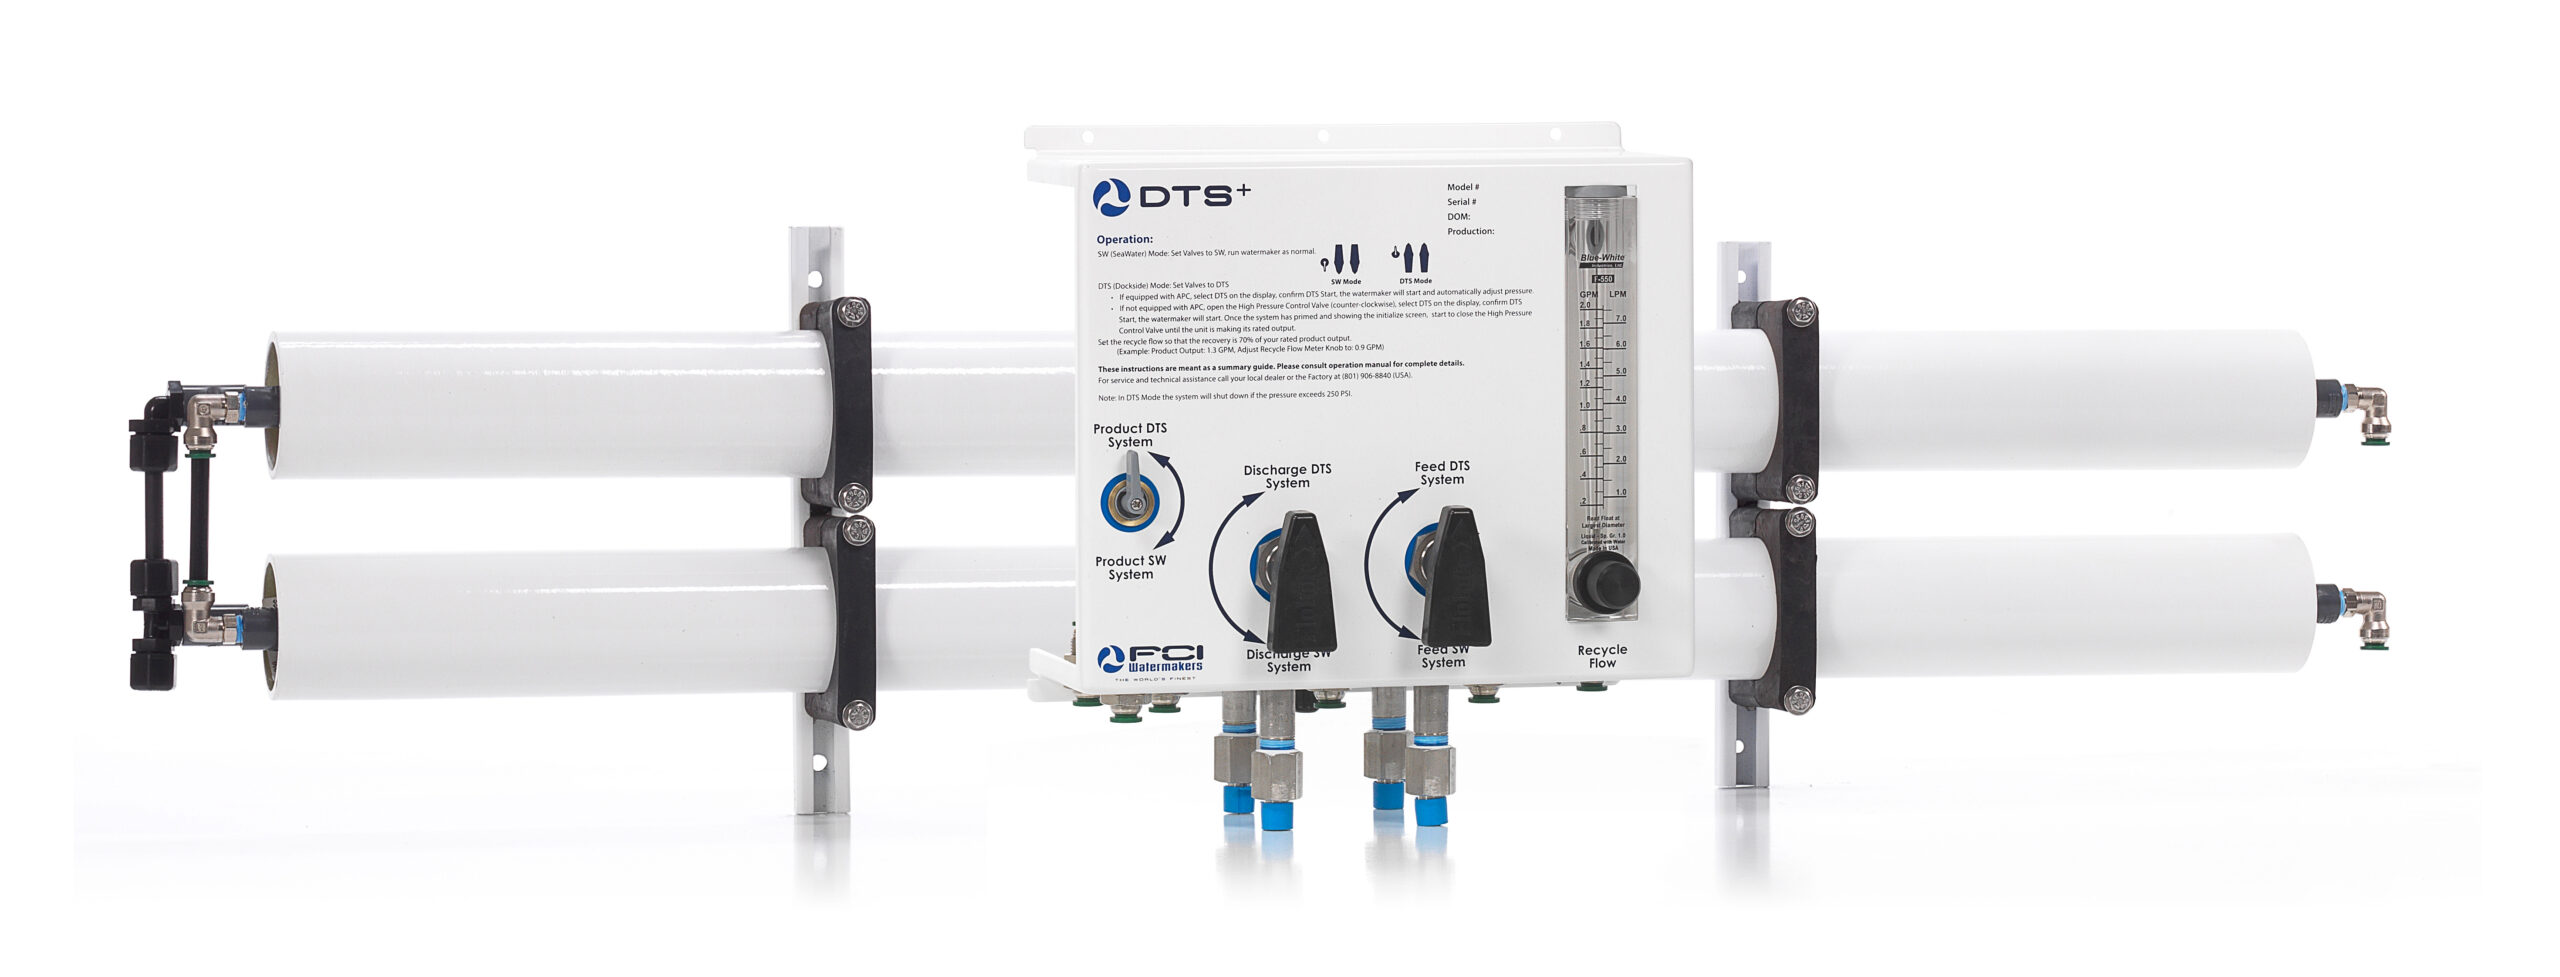 fci-product-dts-plus-scaled.jpg